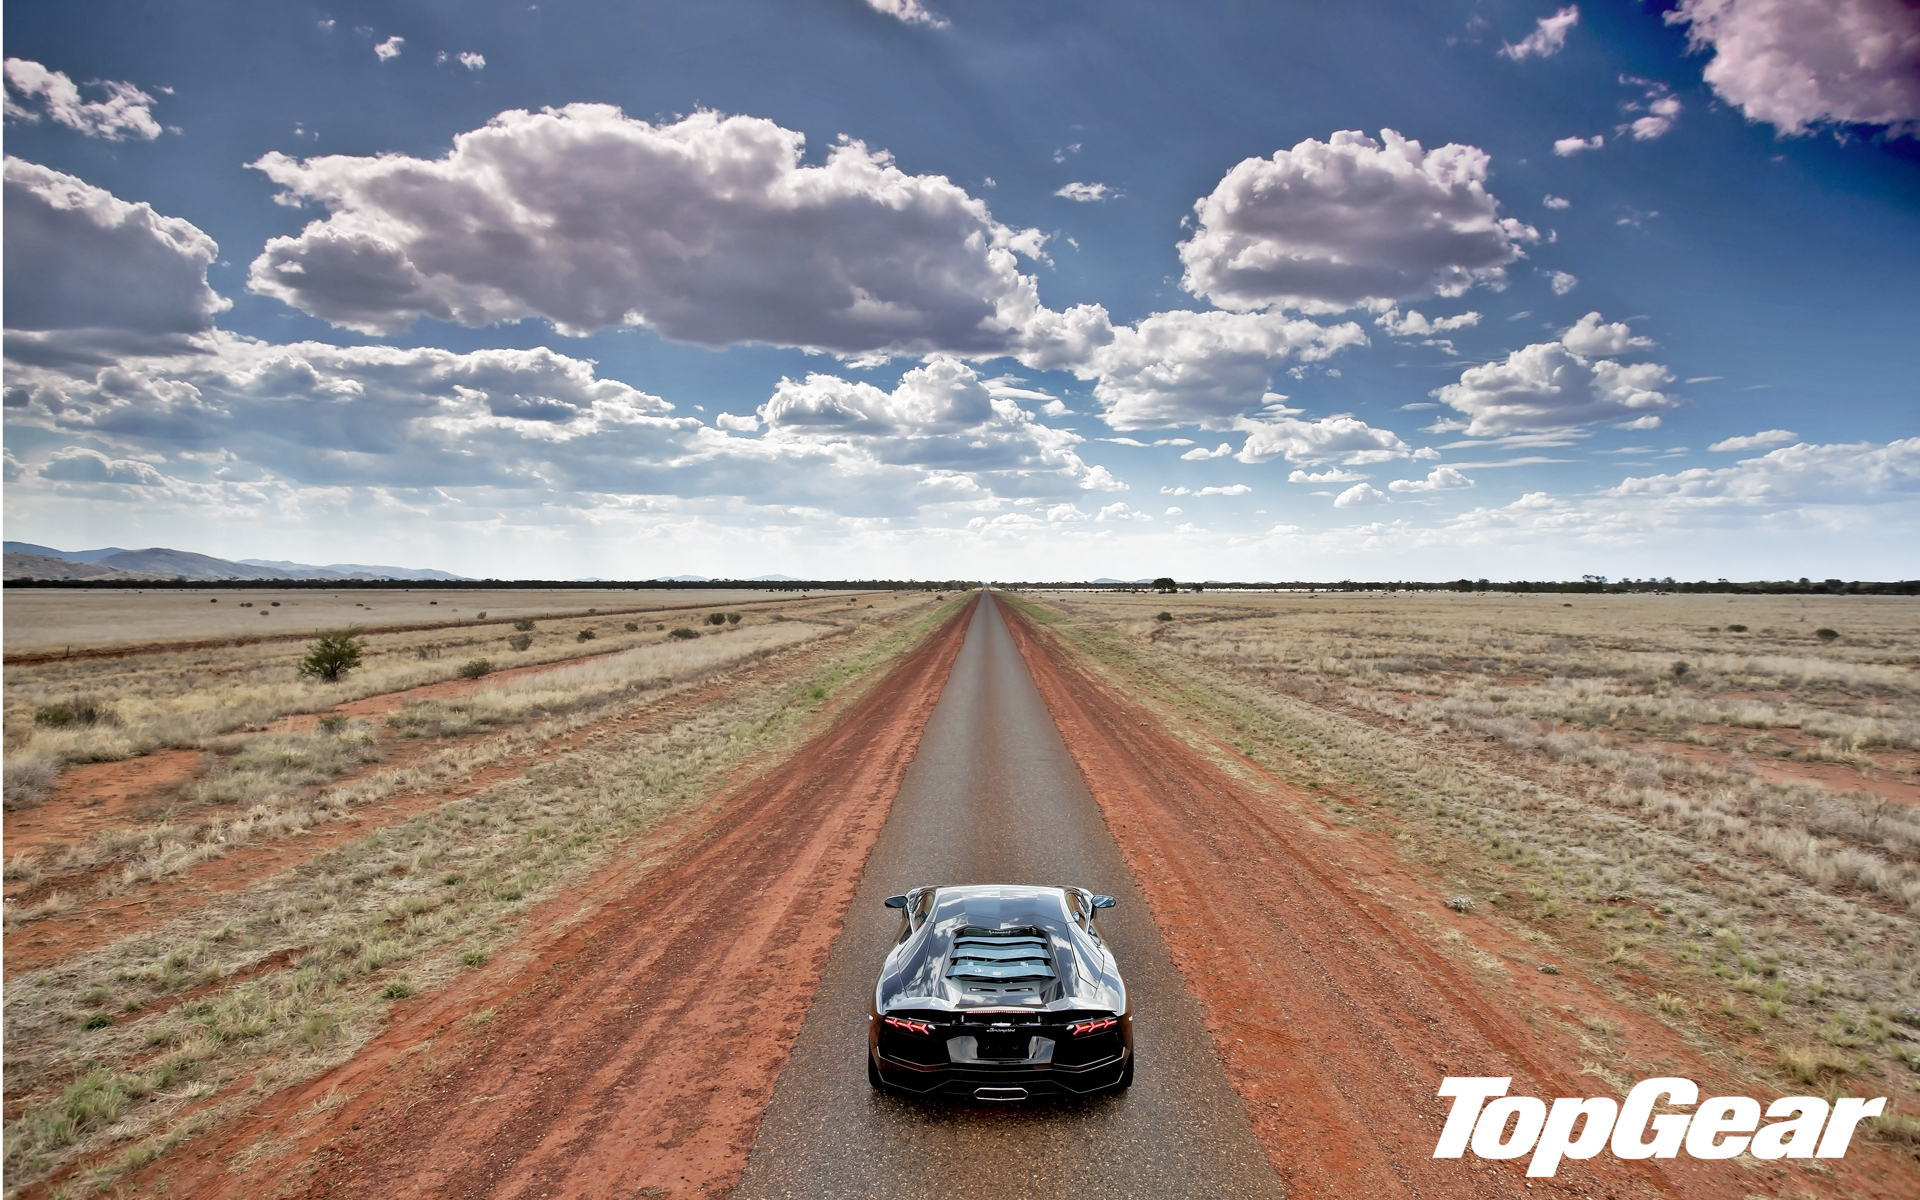 Top Gear Full HD Wallpaper And Background Image